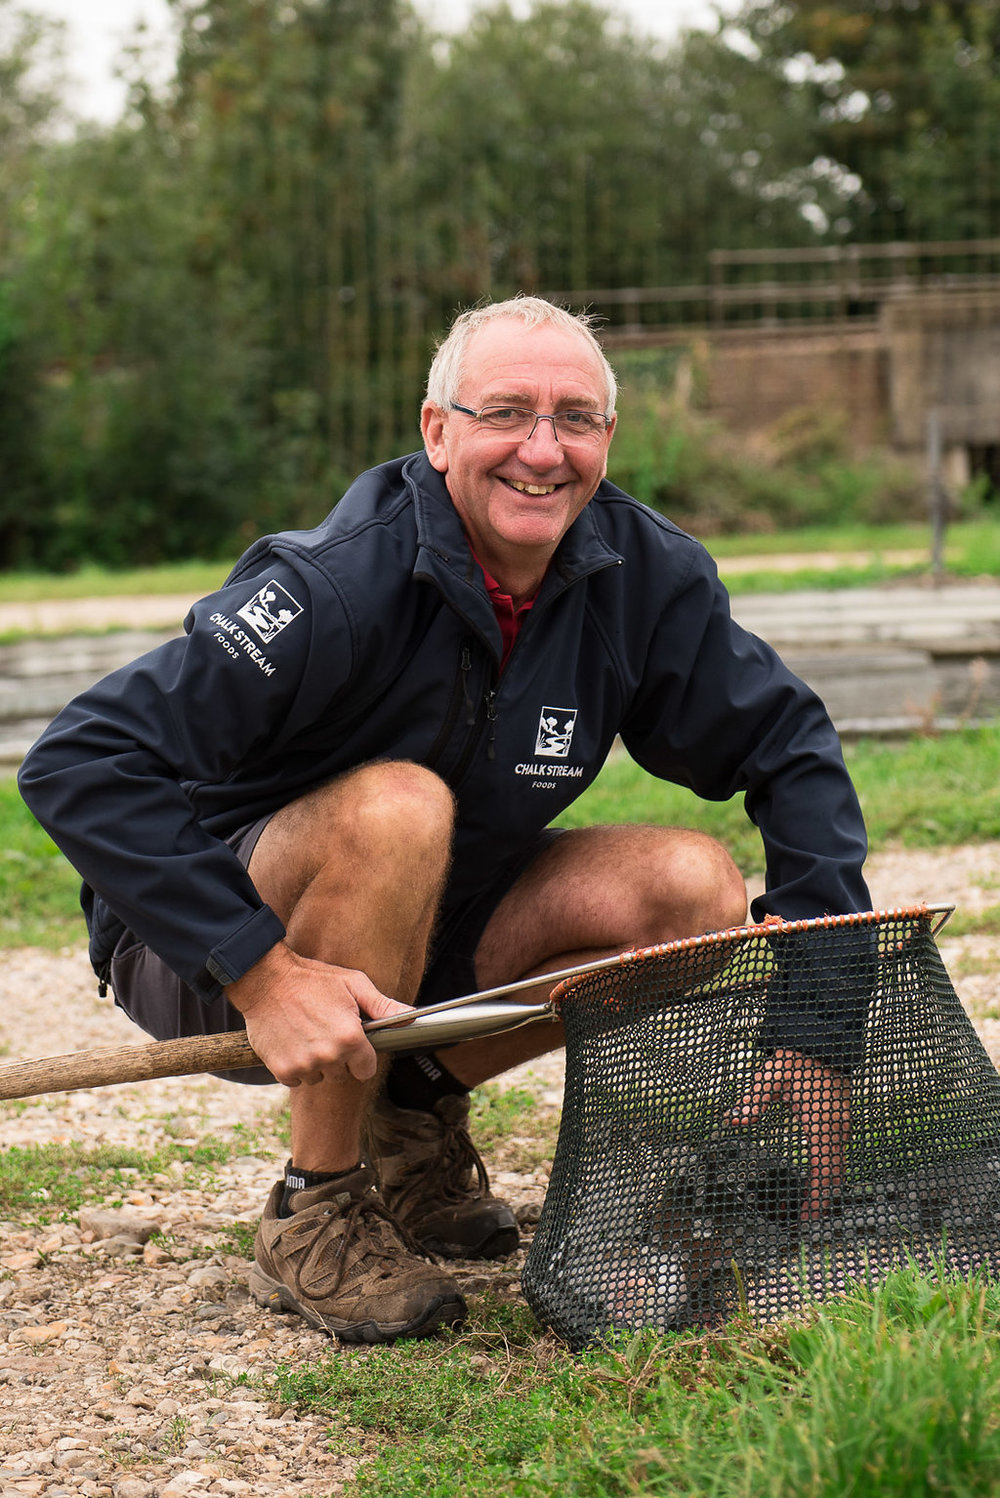 Pete - Manager of our main ChalkSteam® farm at Greatbridge, Romsey for more than 35 years, no-one has more experience in growing trout. Pete's passion and dedication is at the heart of everything we do.